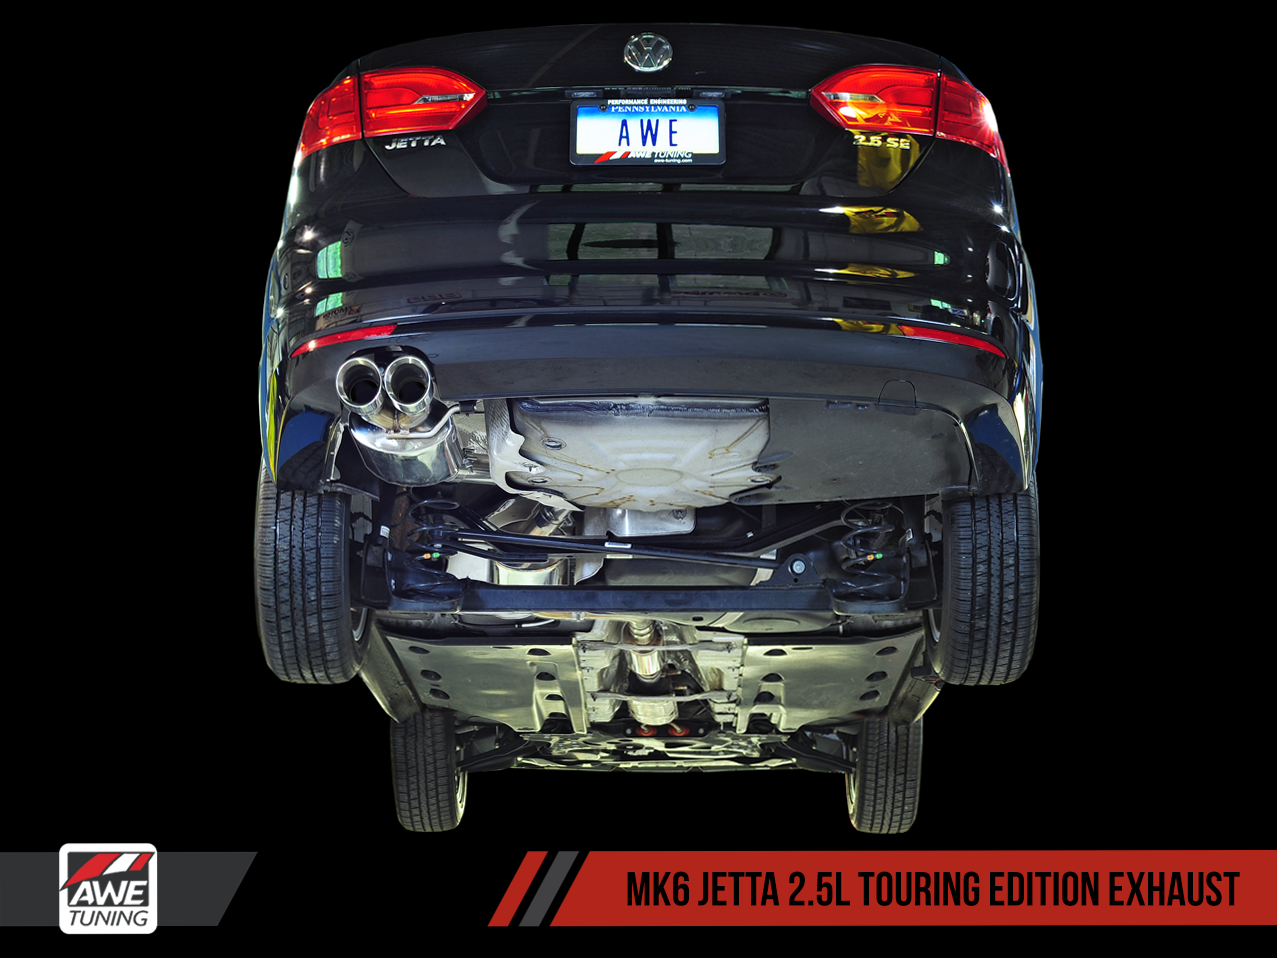 Awe Tuning Mk6 Jetta 25l Exhaust Suite 2011 2 5 Fuel Filter